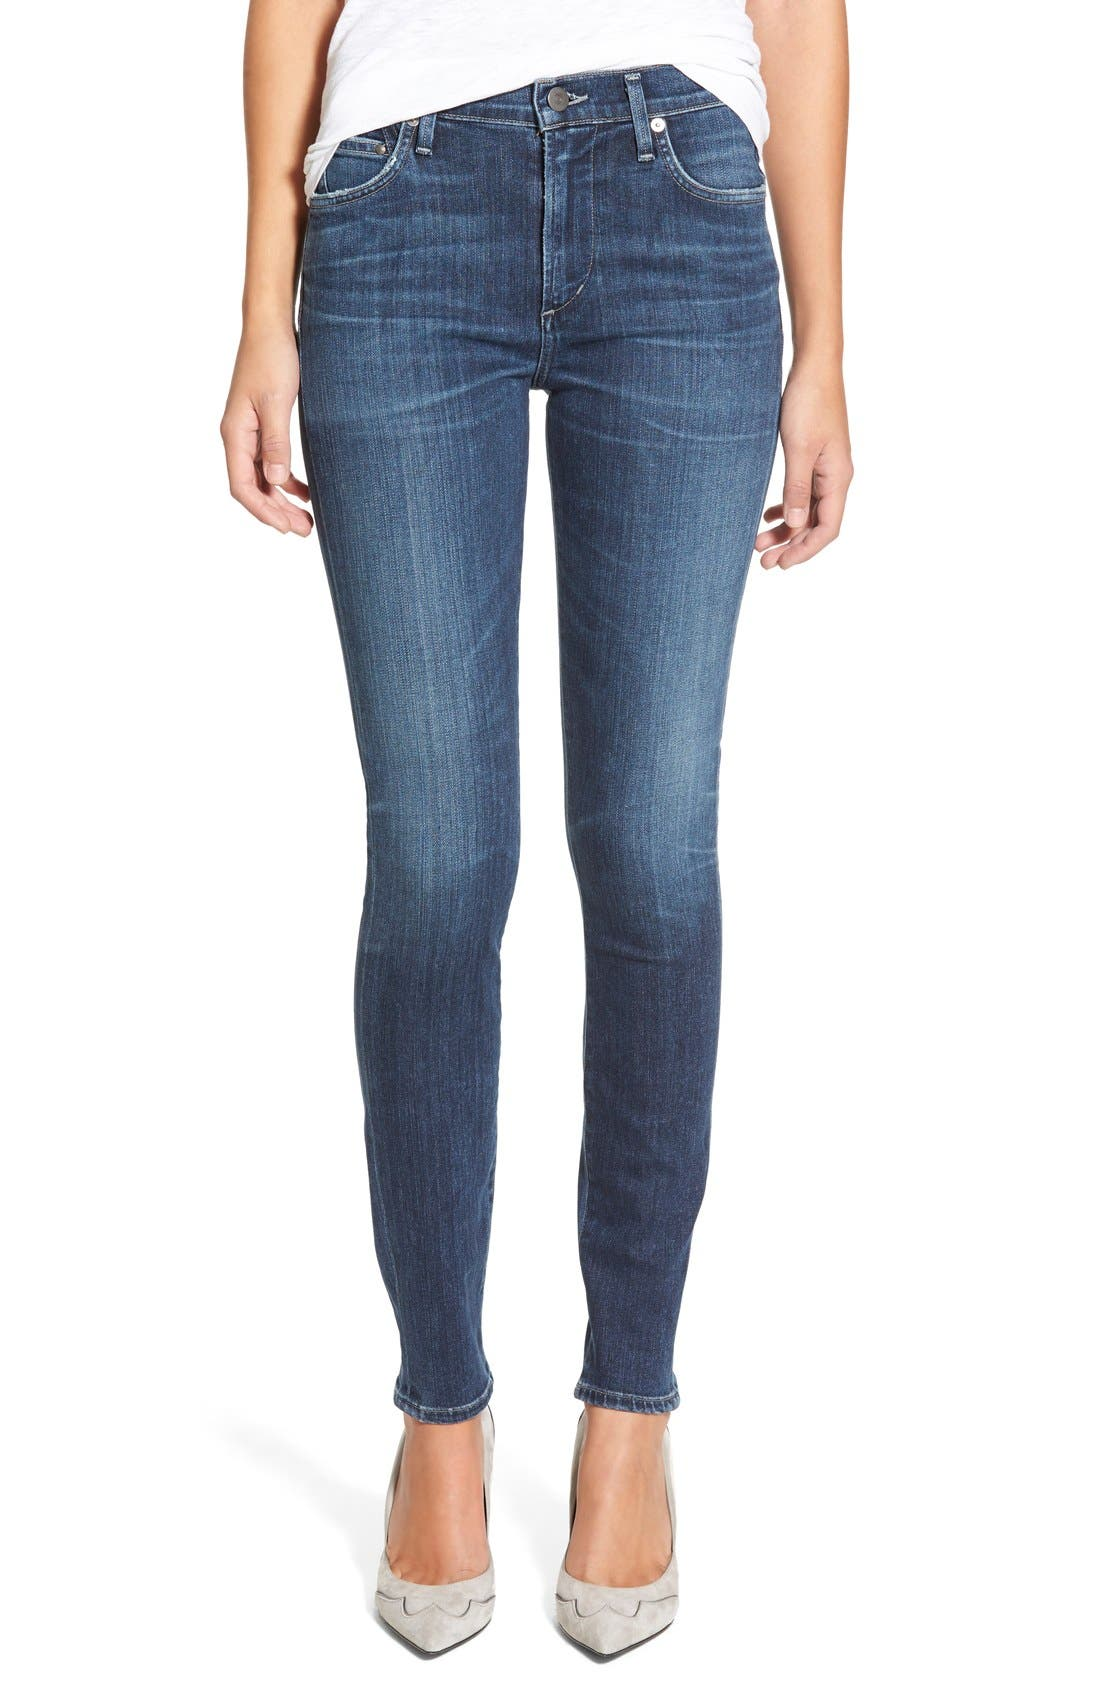 Rocket High Waist Skinny Jeans,                             Main thumbnail 1, color,                             Albion